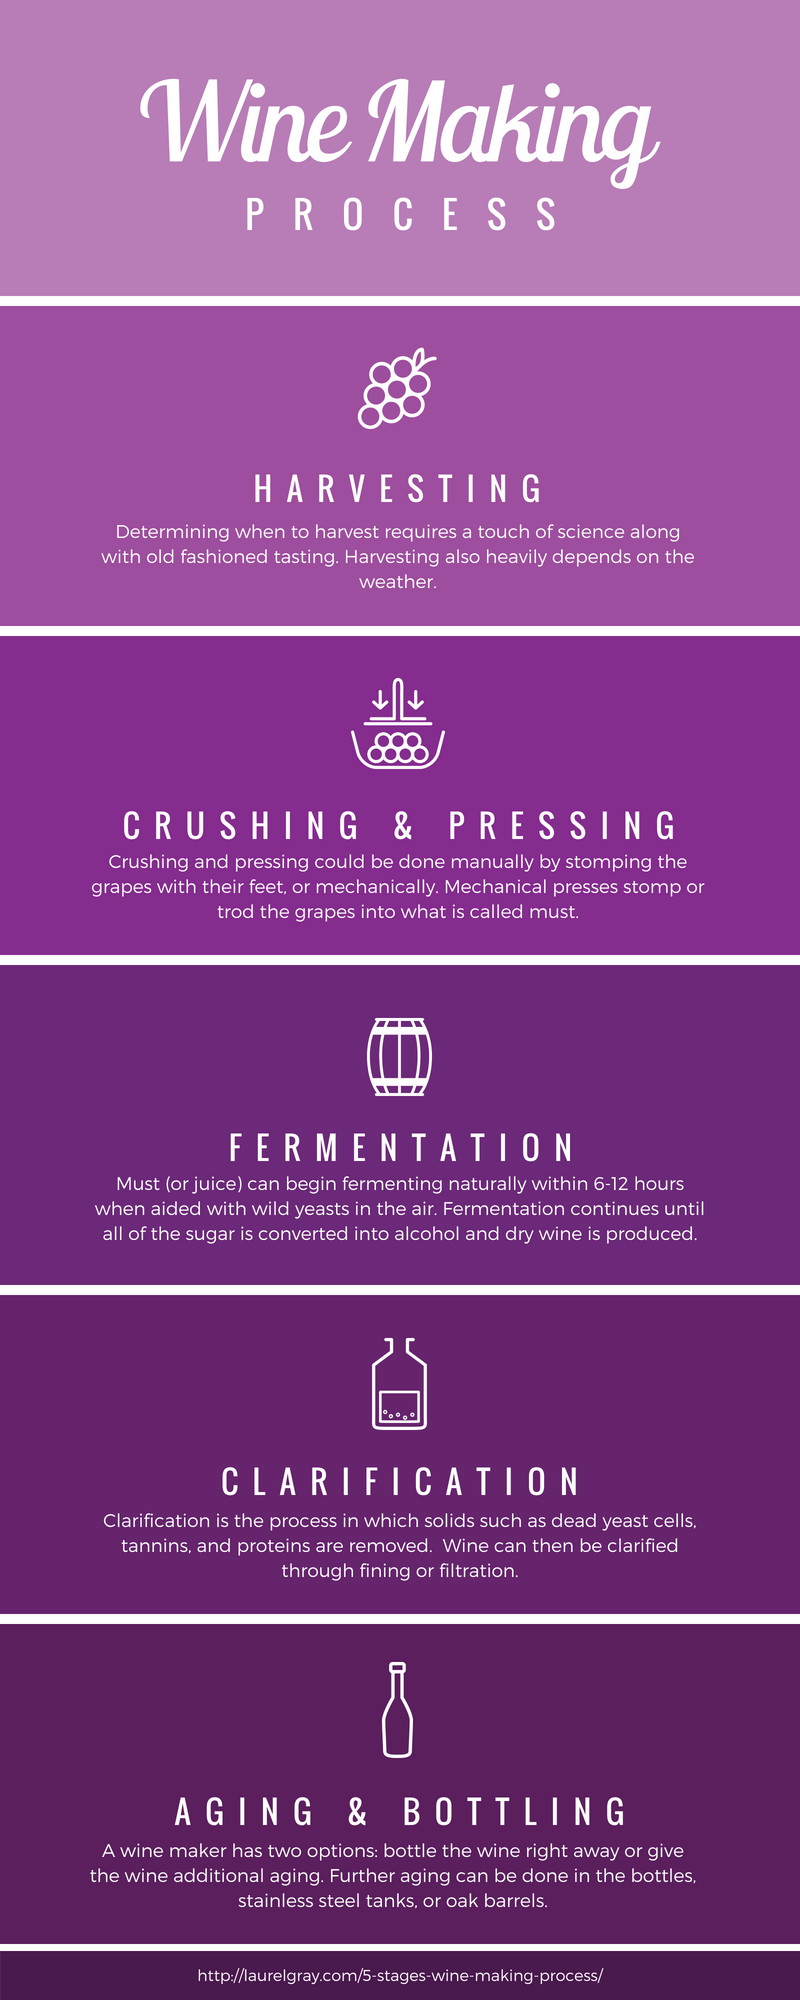 winedivaa wine making process